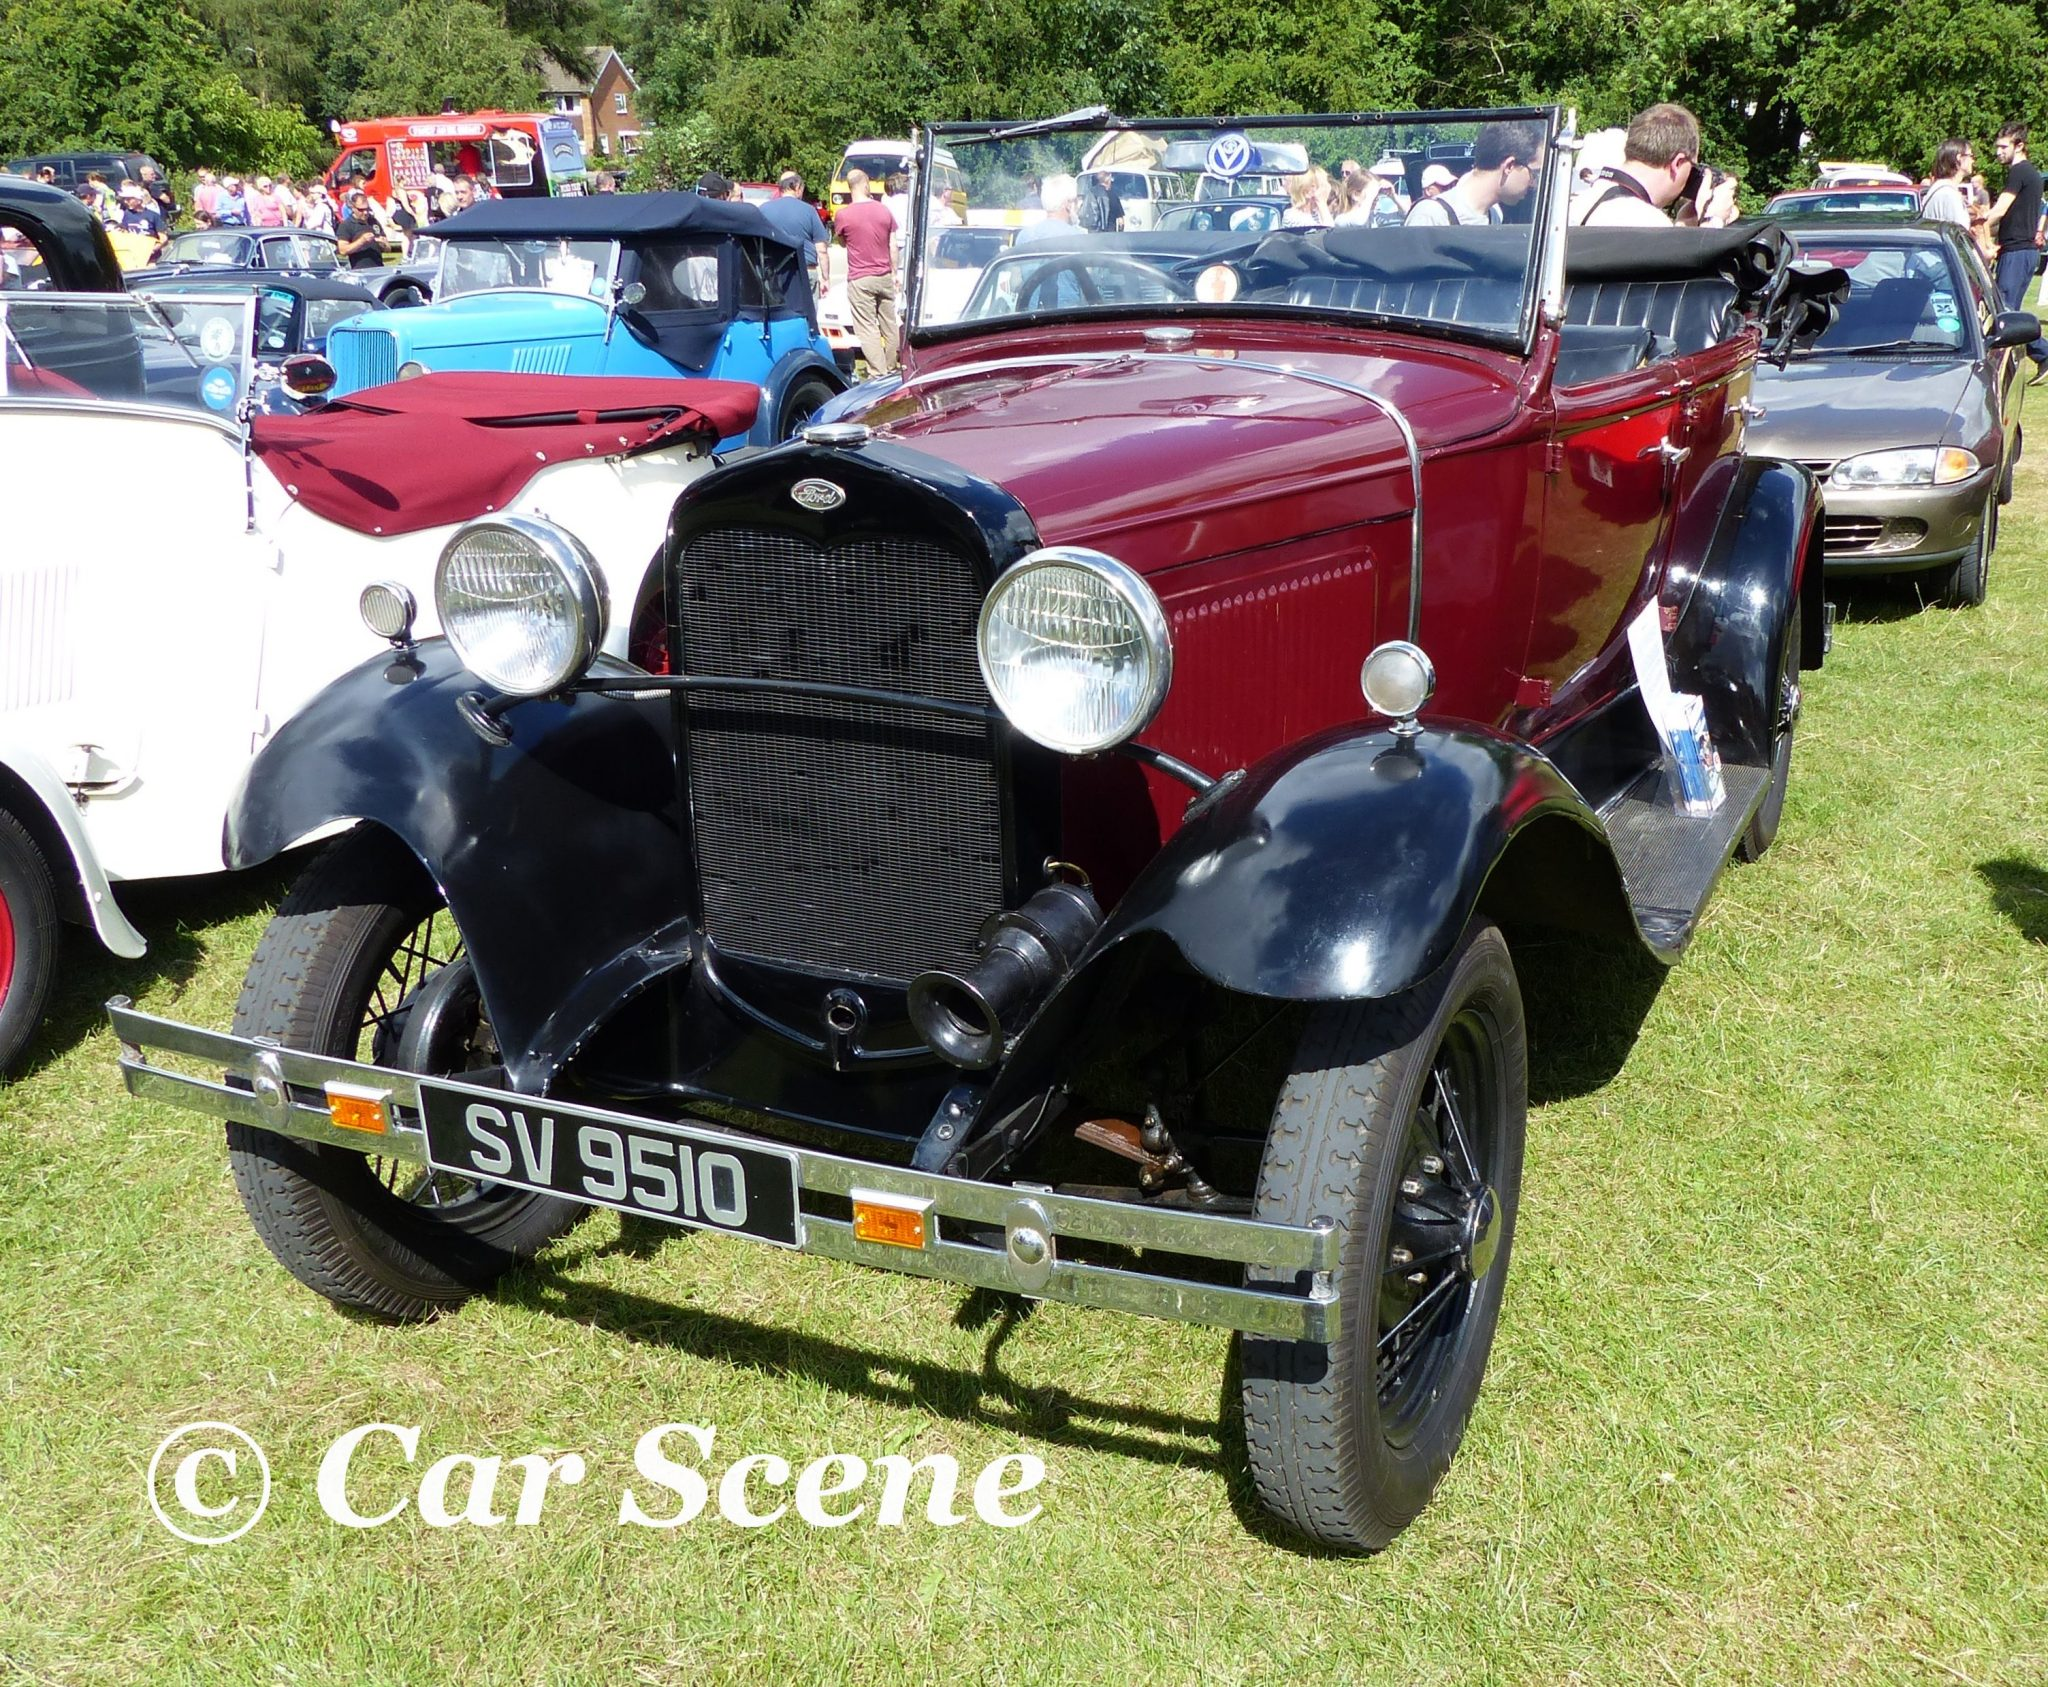 1930 Ford Model A tourer front view